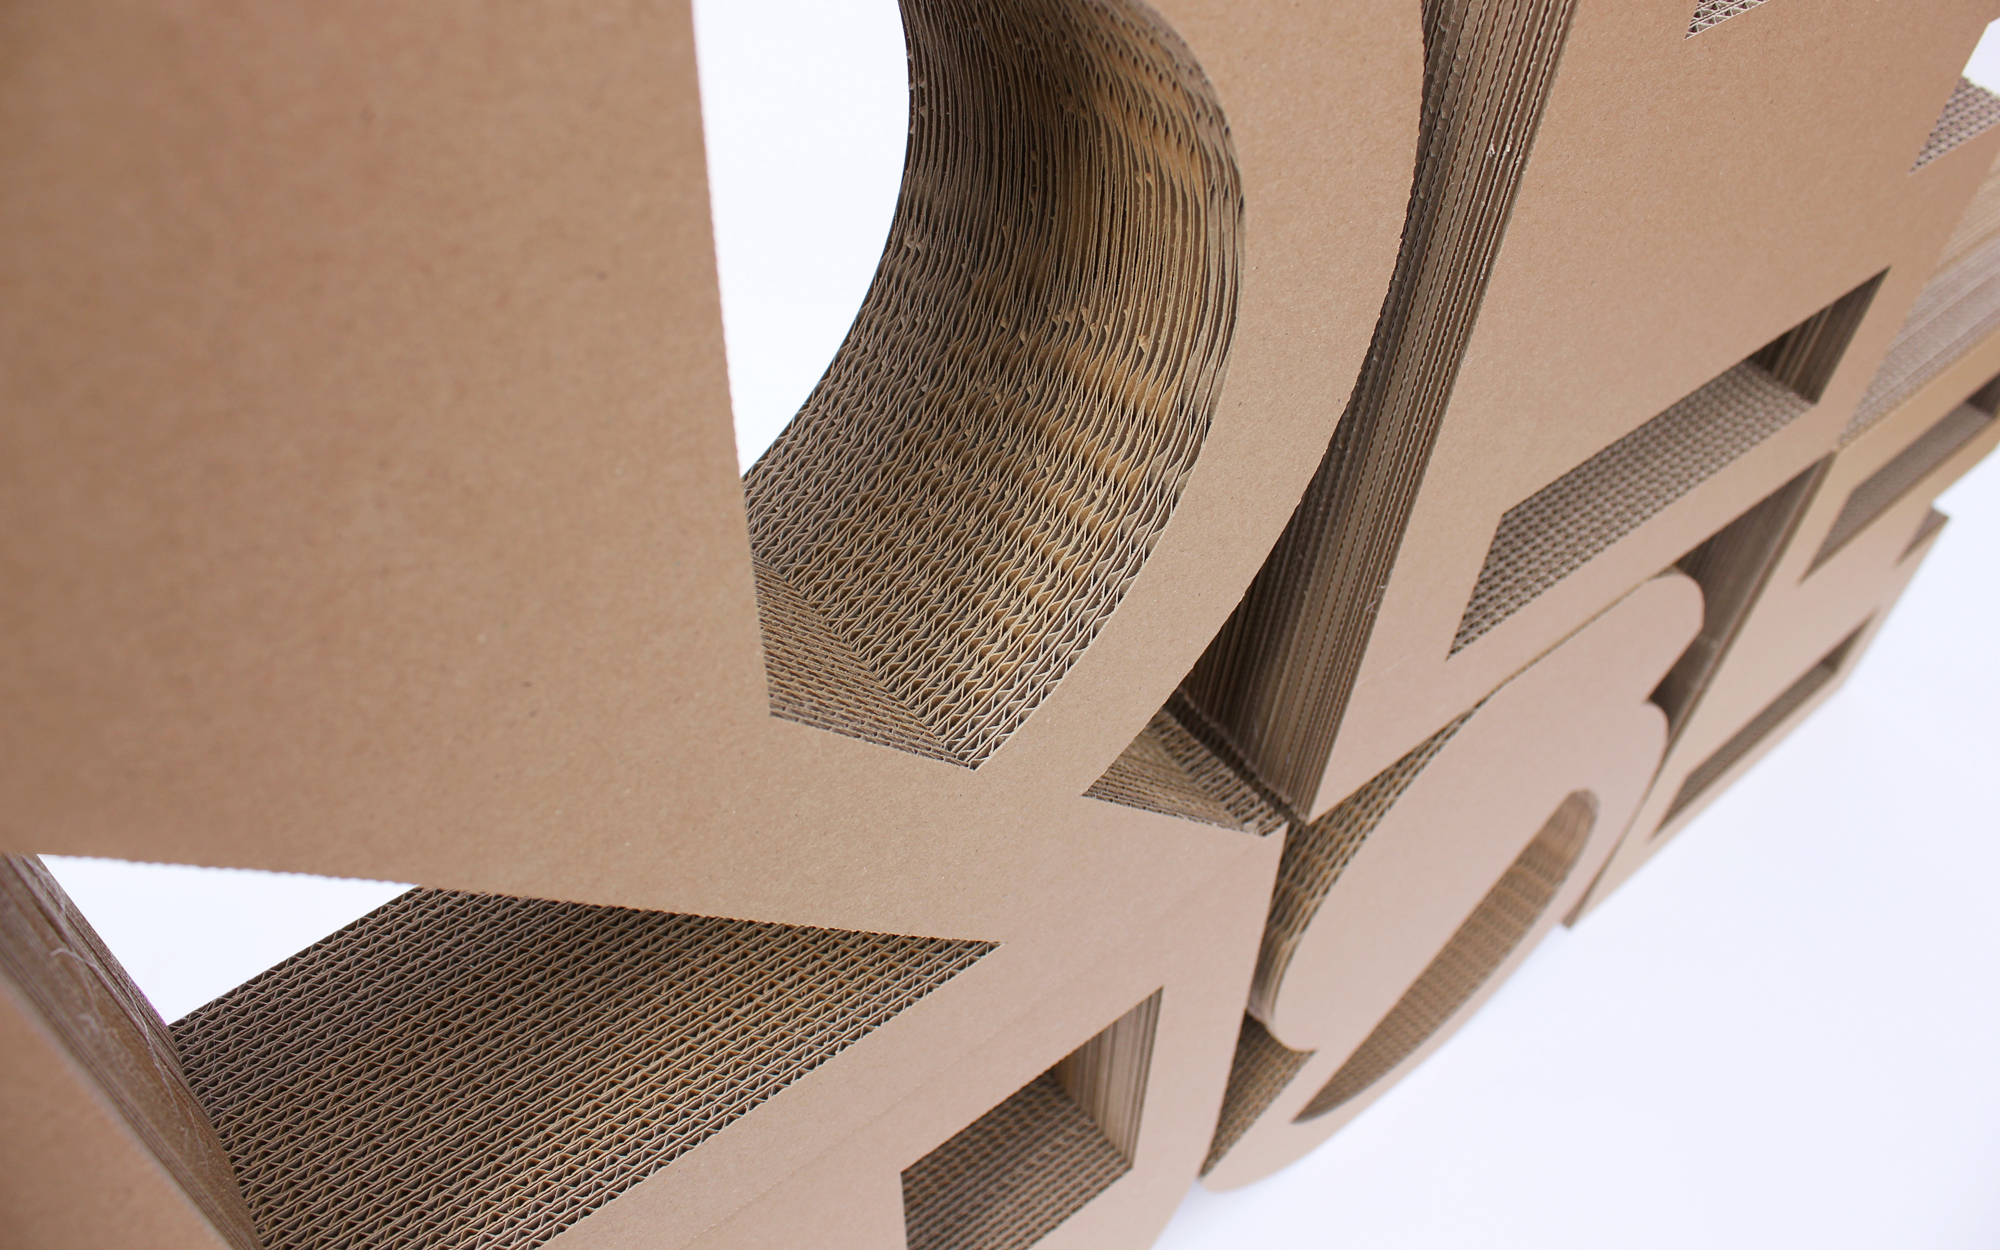 reuse_type_cardboard_typography_matthew_pomorski_graphic_designer_kent_7